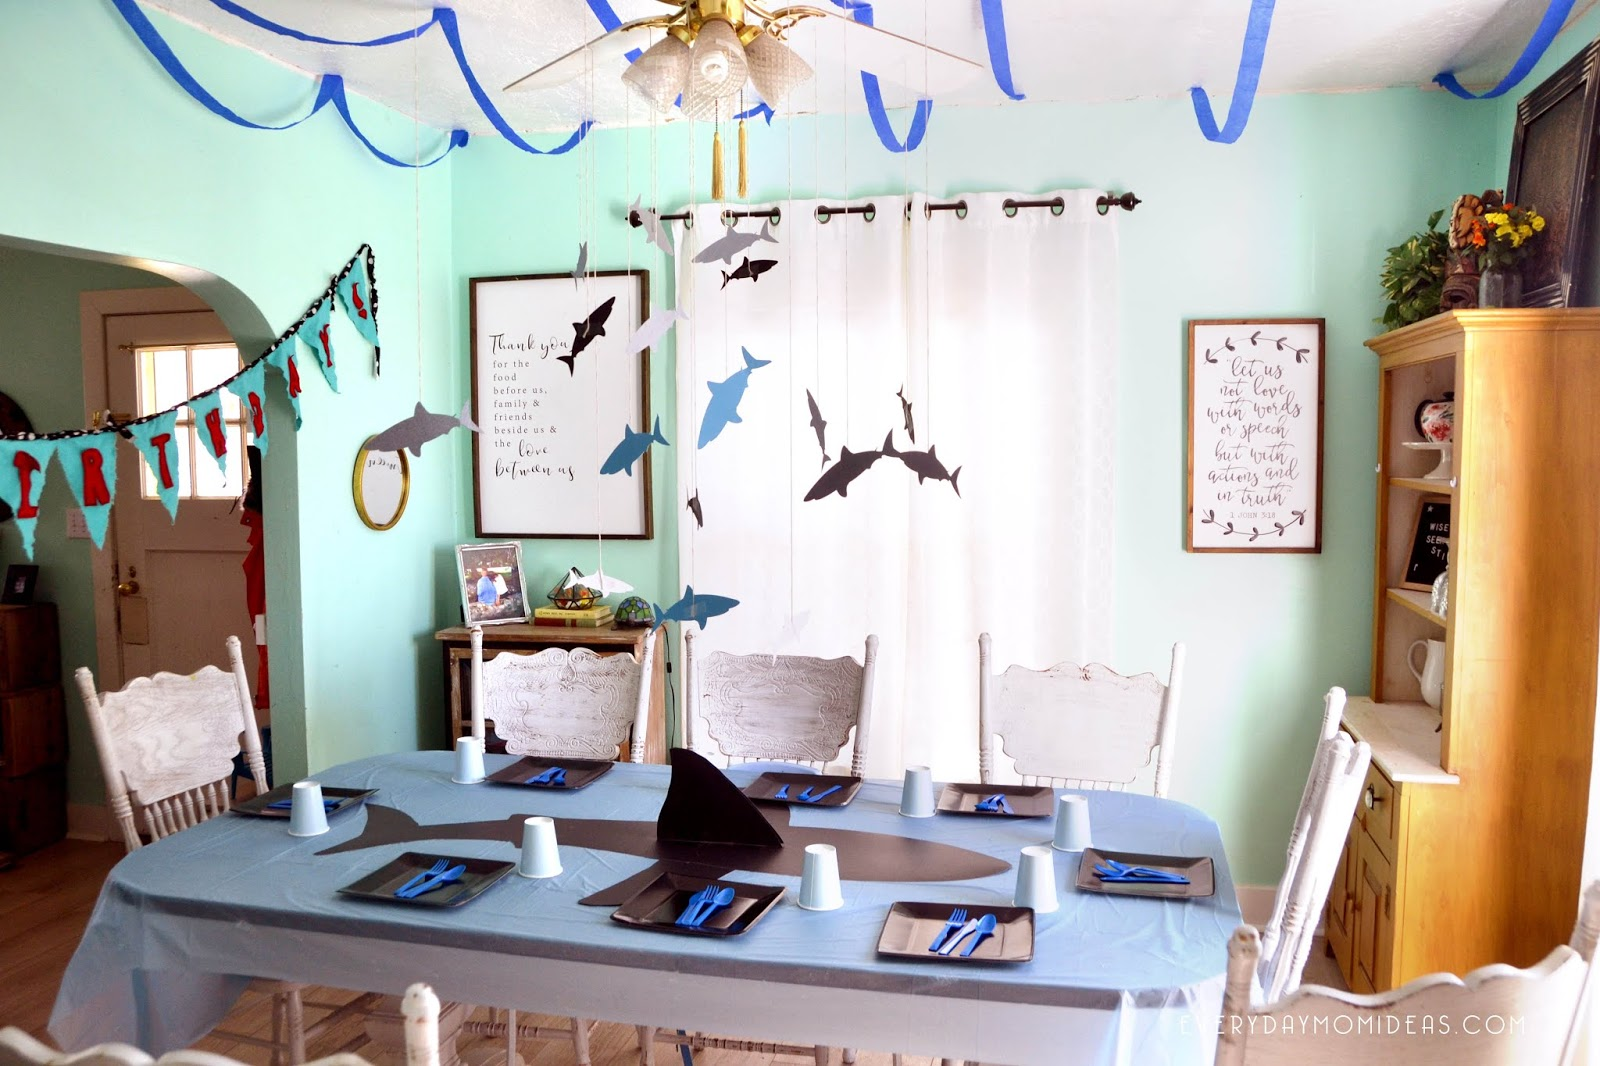 Simple Shark Decorations We Decided To Only Decorate The Dinning Room Everything You See Was Purchased At Dollar Store My Favorite Part